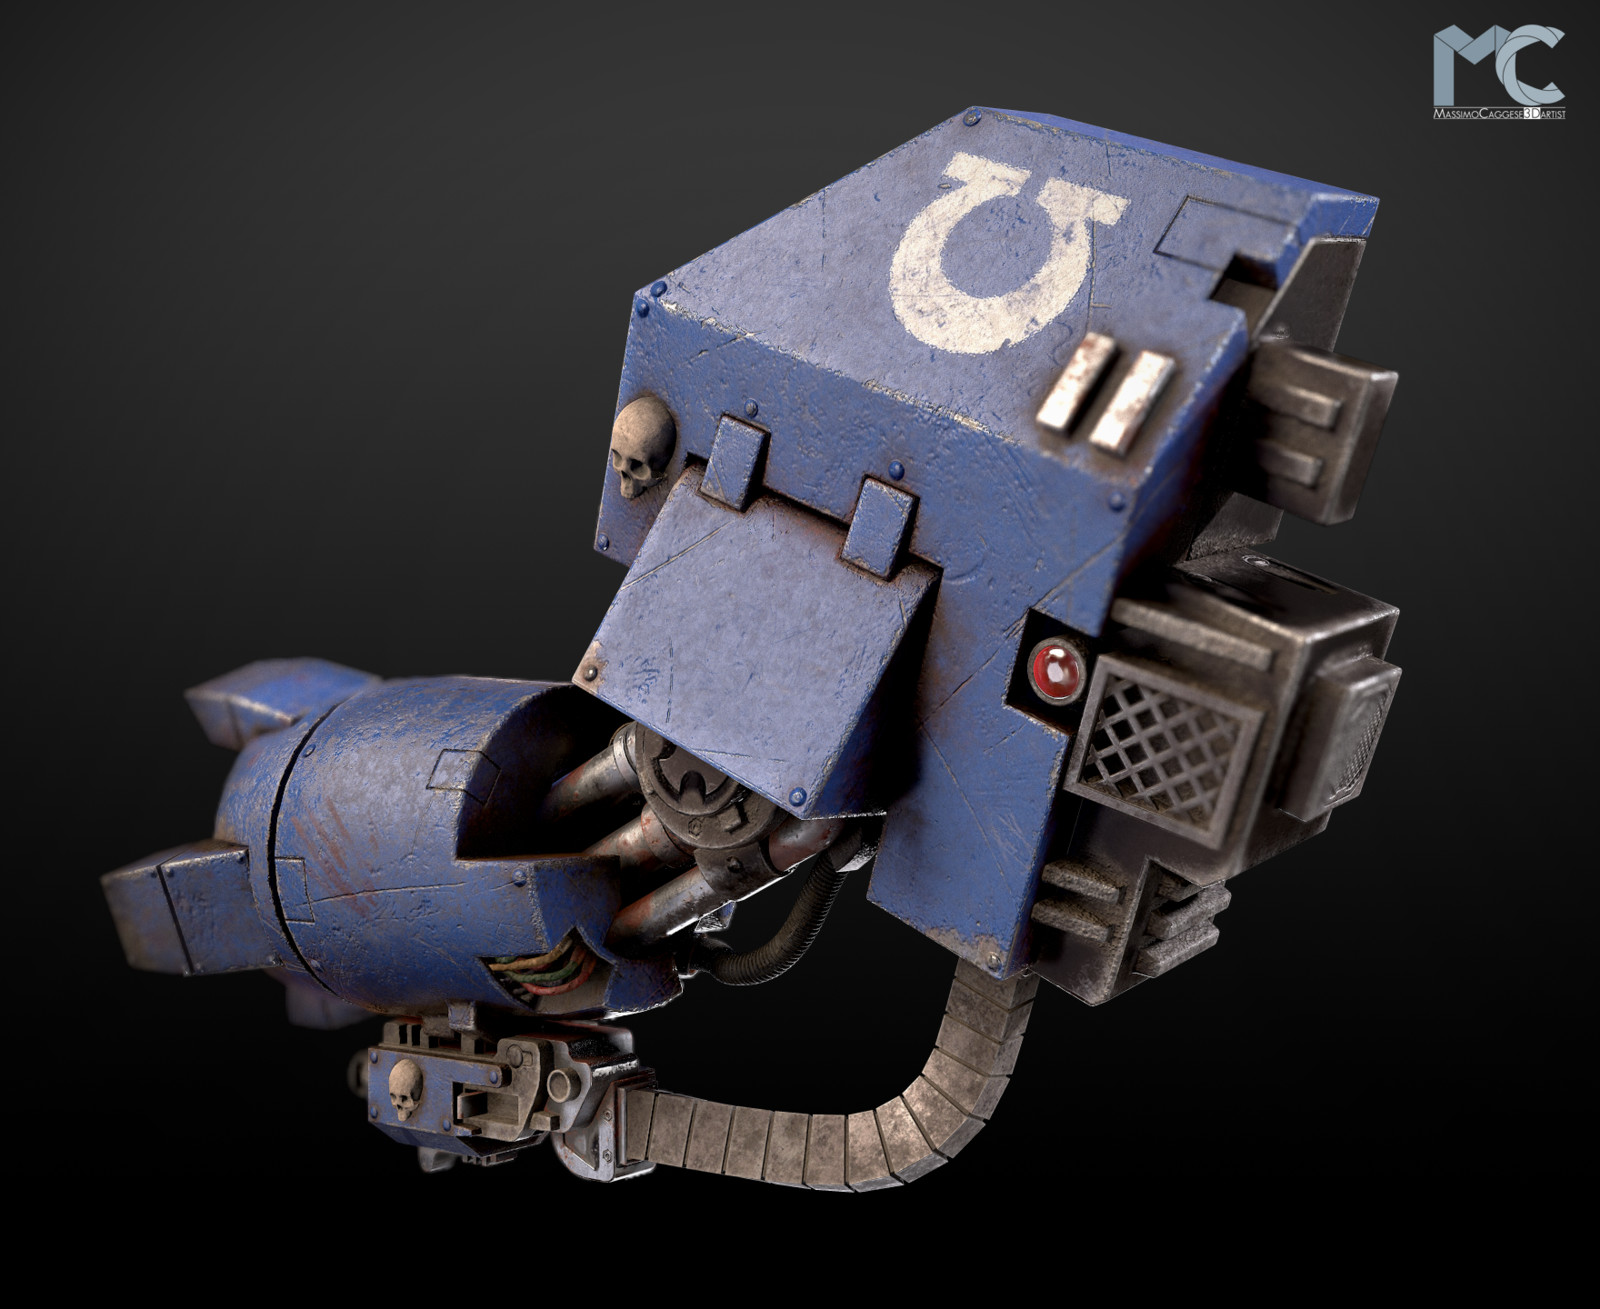 Back view (Marmoset Toolbag 3).